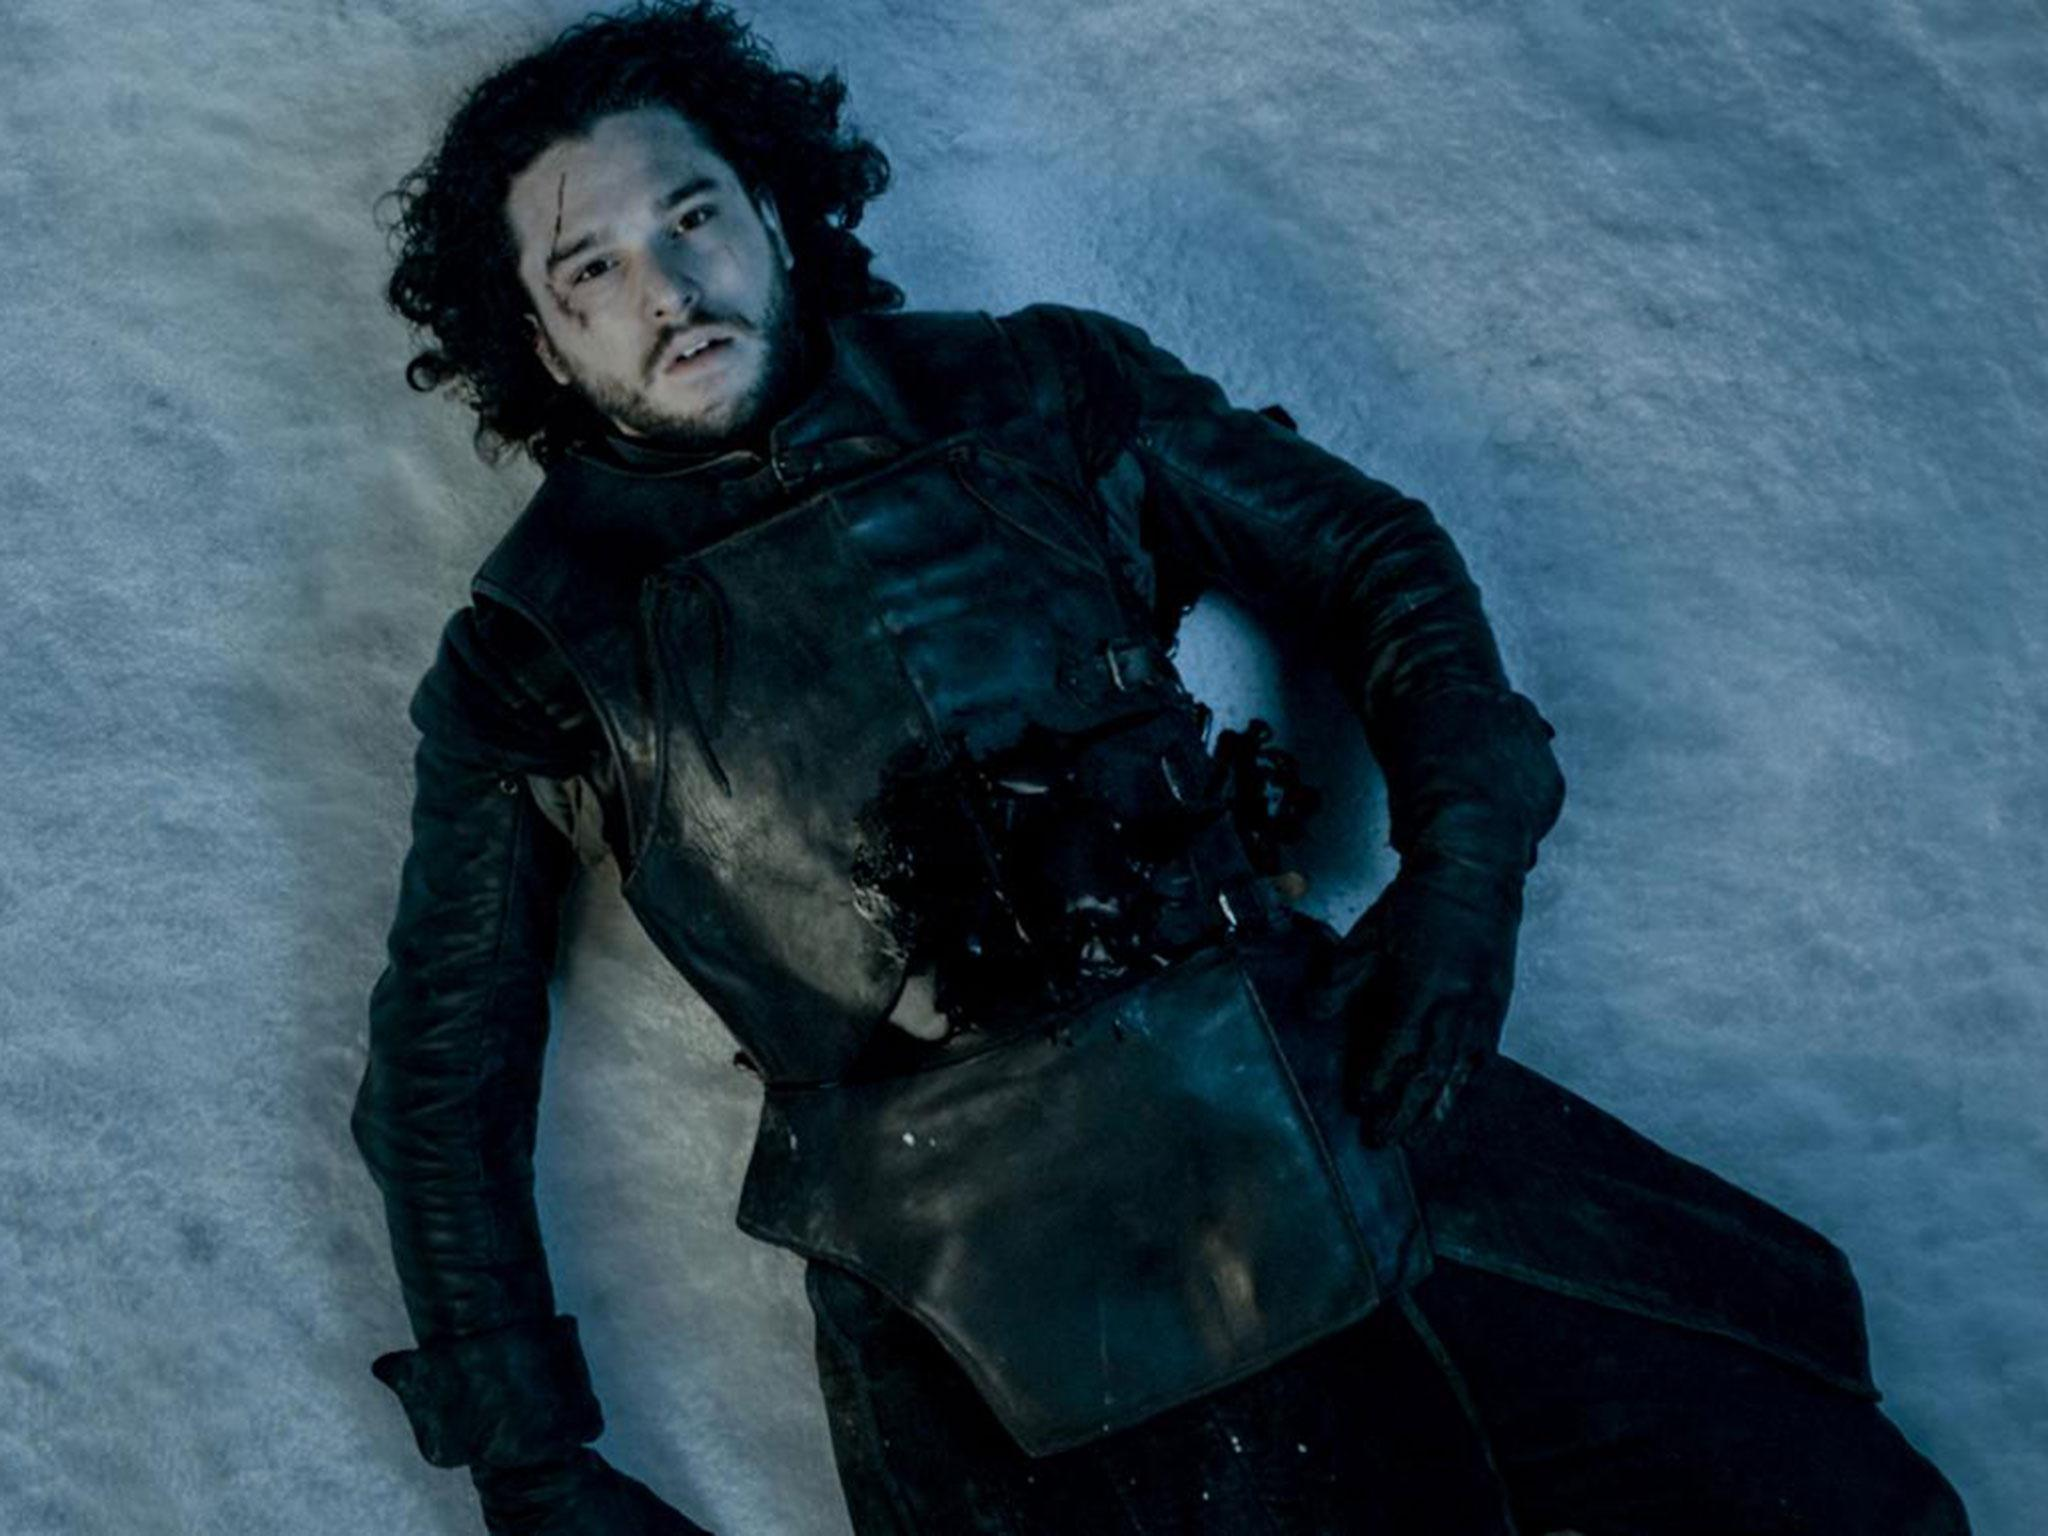 Game Of Thrones Season 6 Kit Harington Had To Lie To Cast About